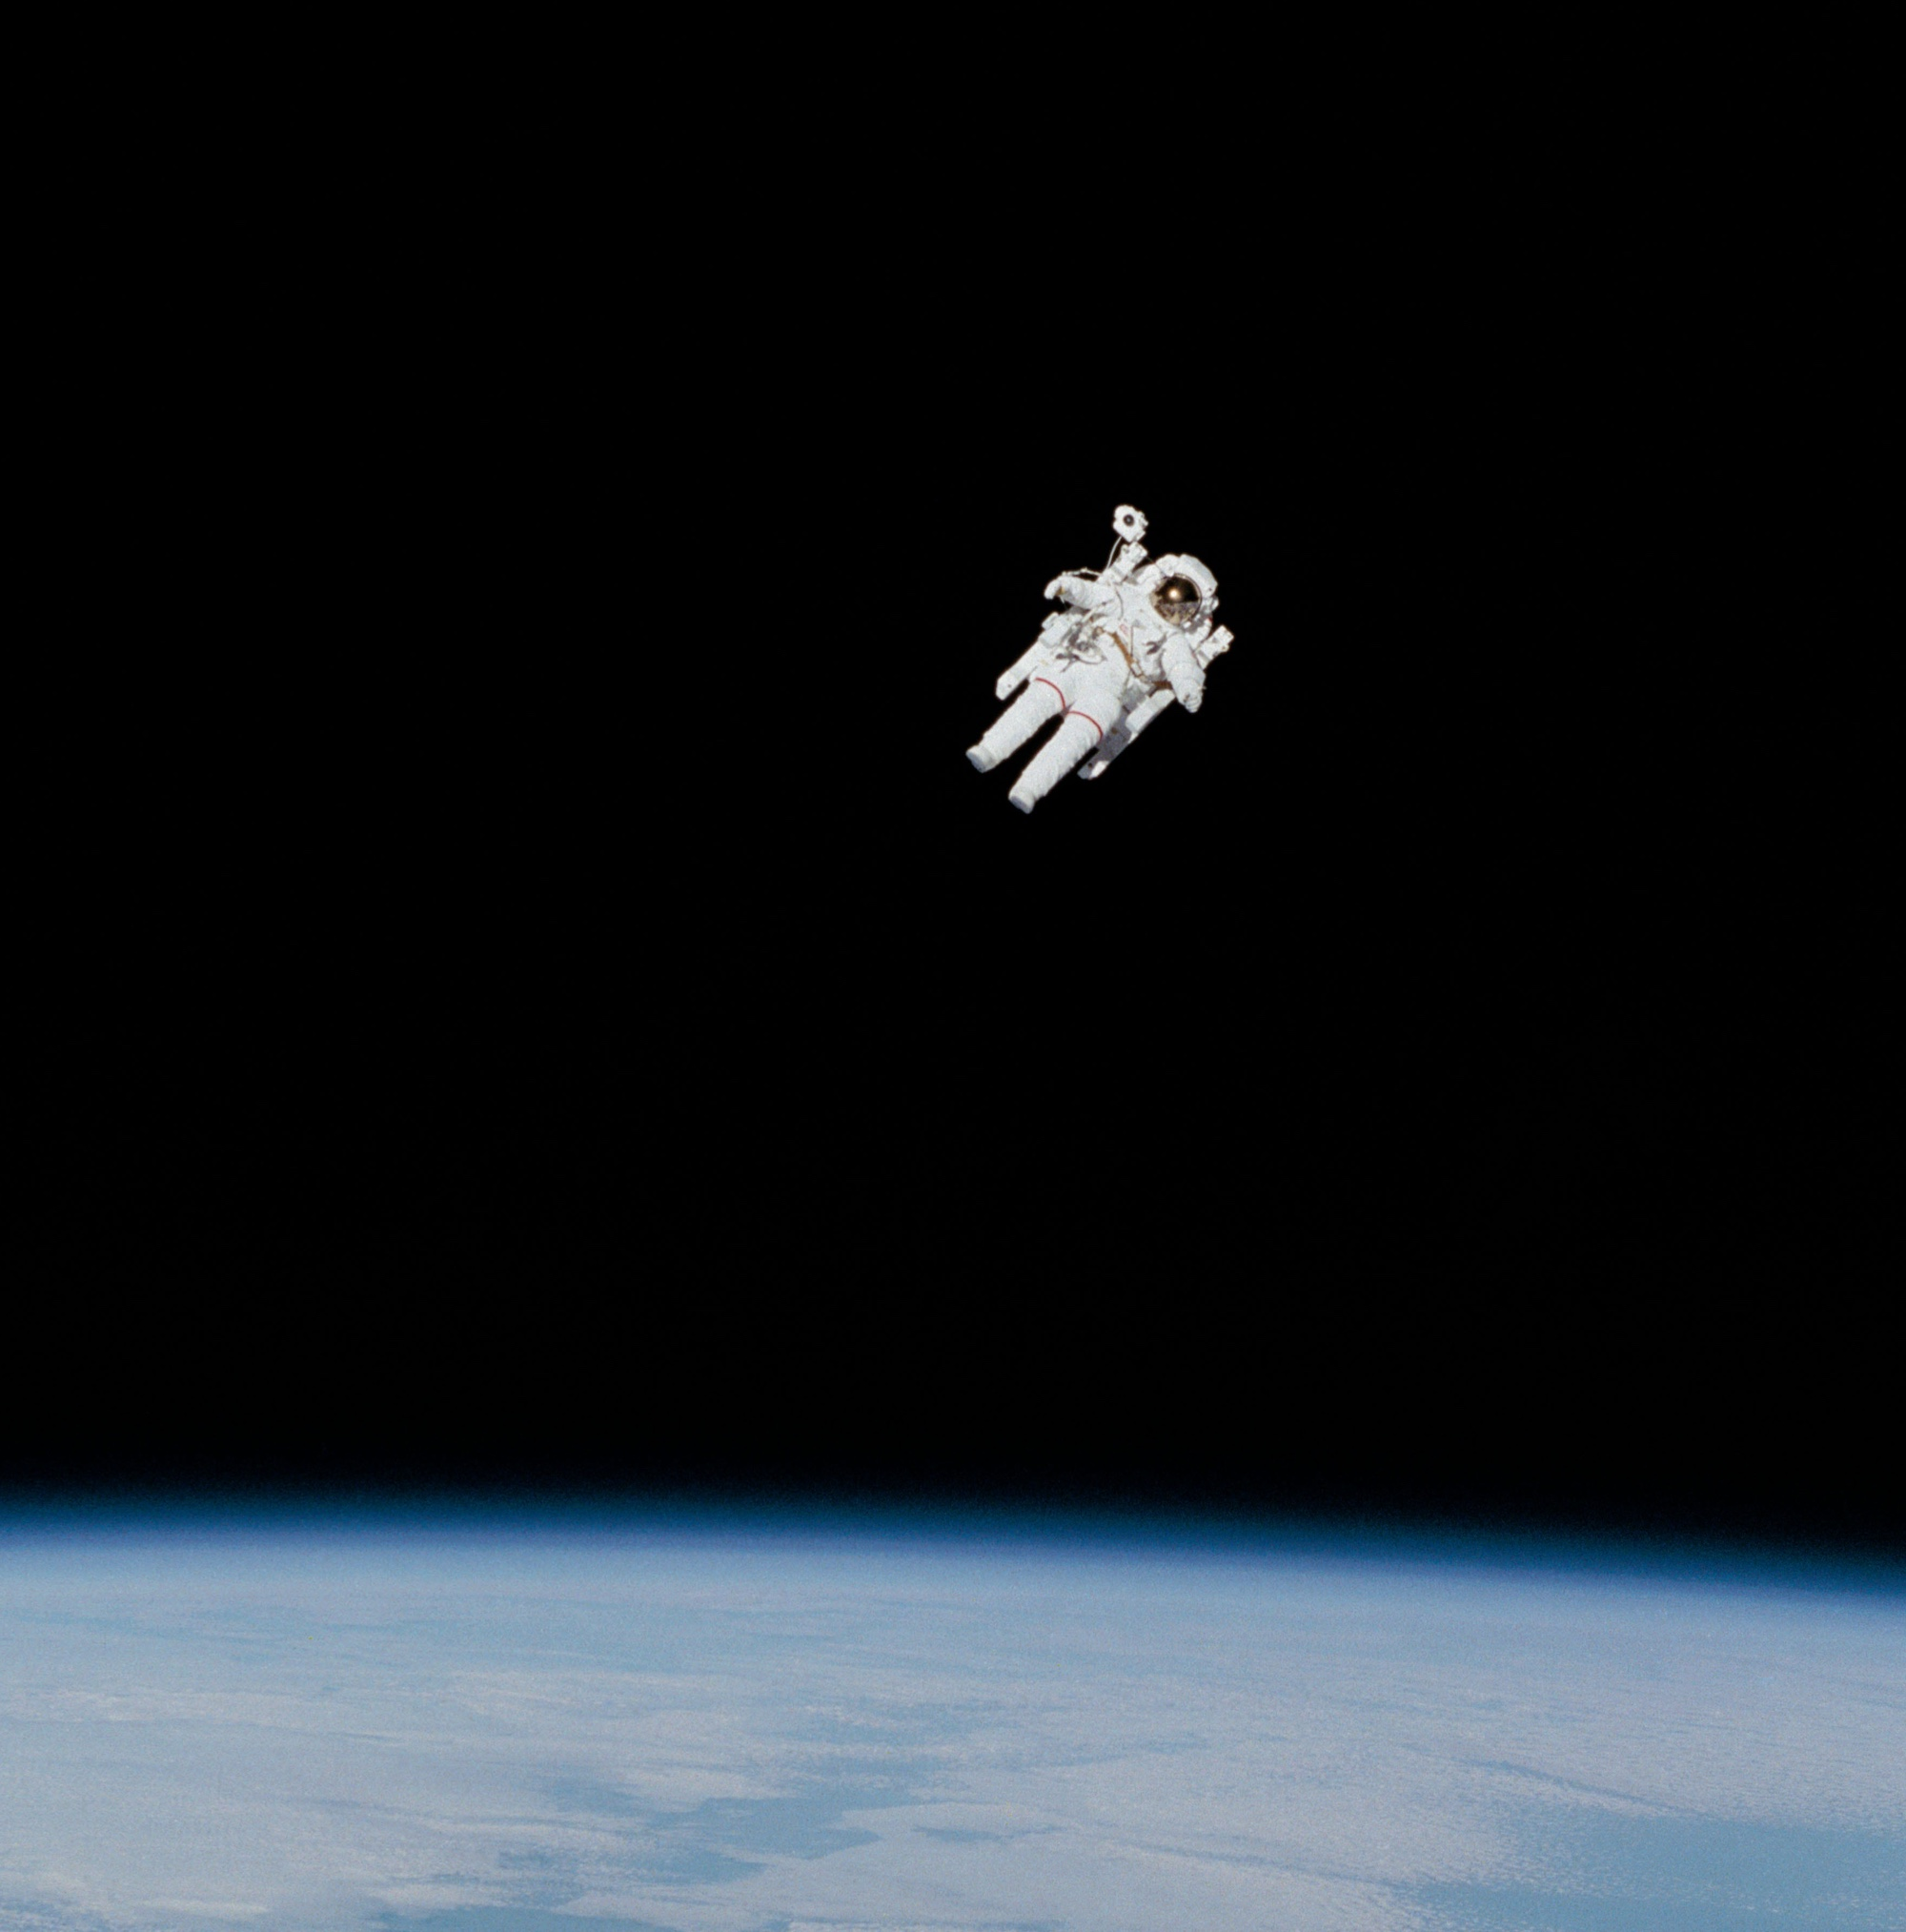 iconic image of astronaut floating in space